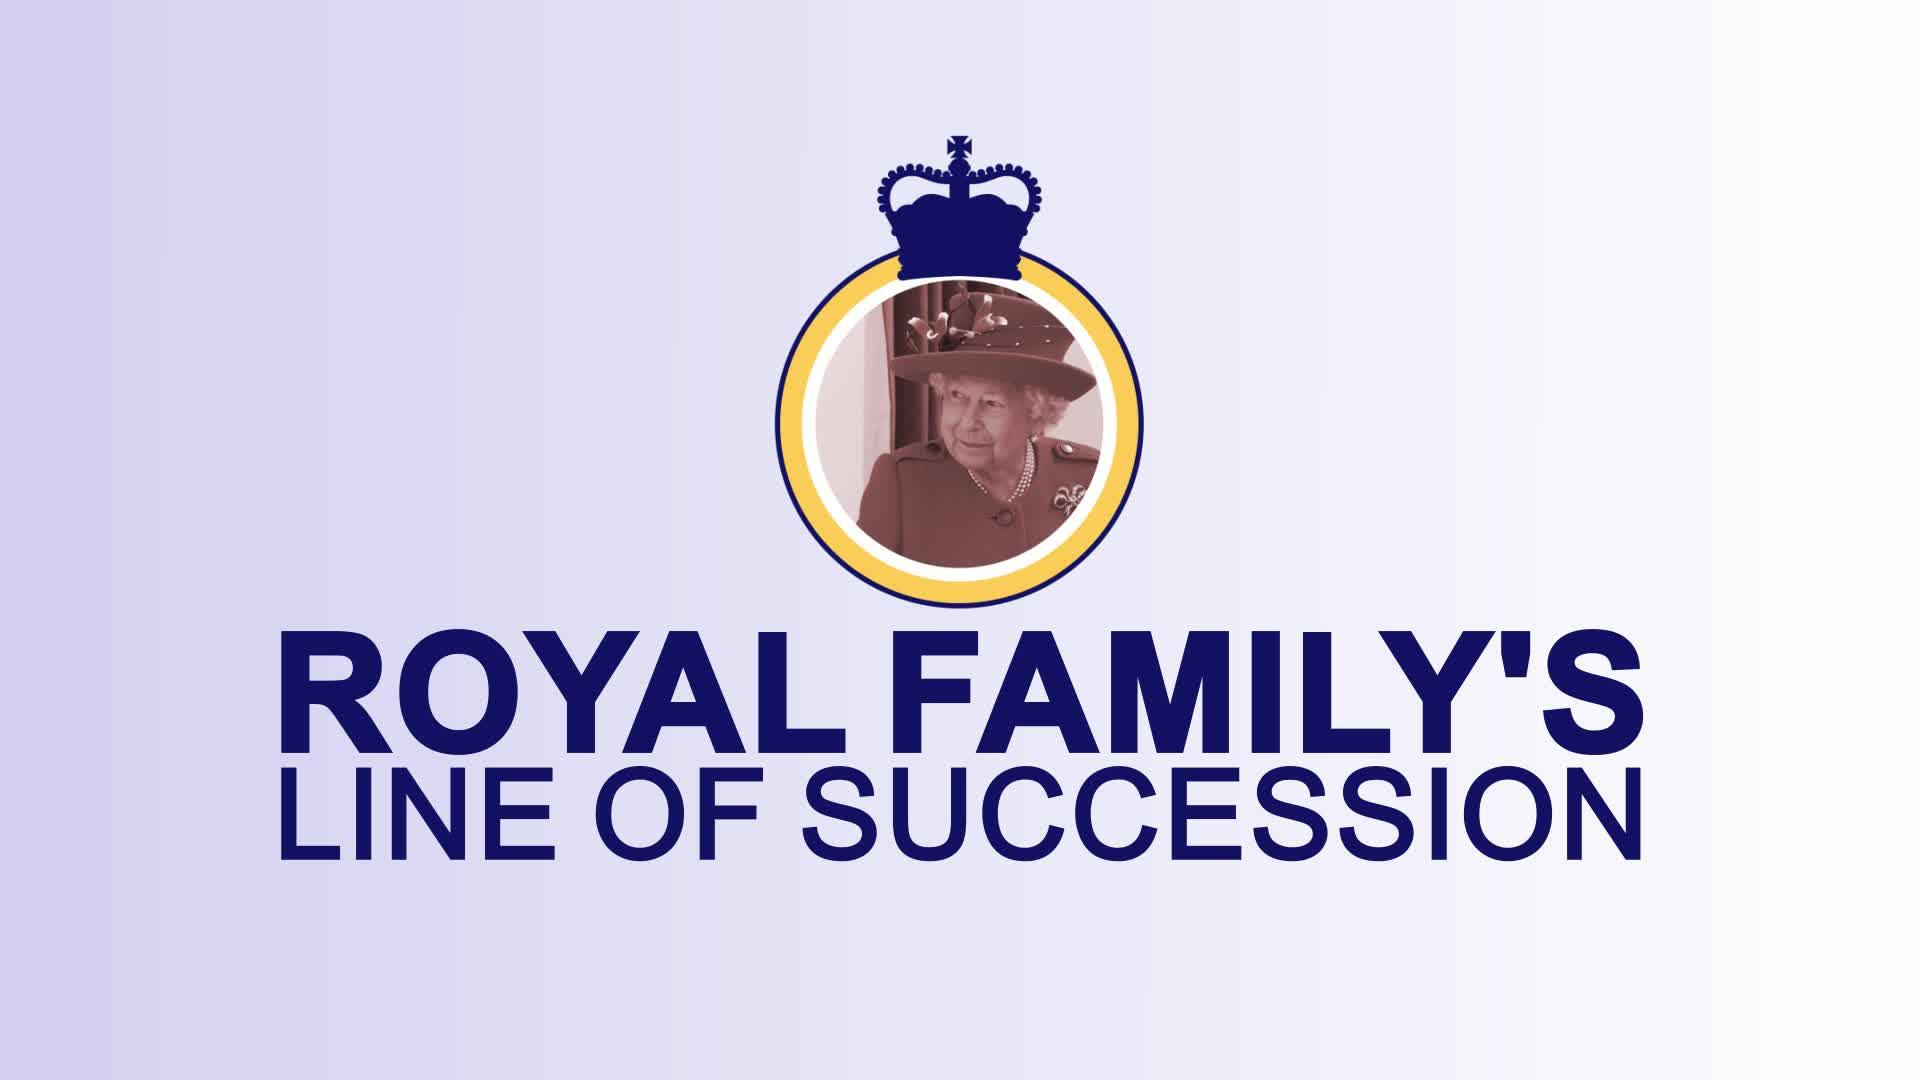 Royal family's line of succession